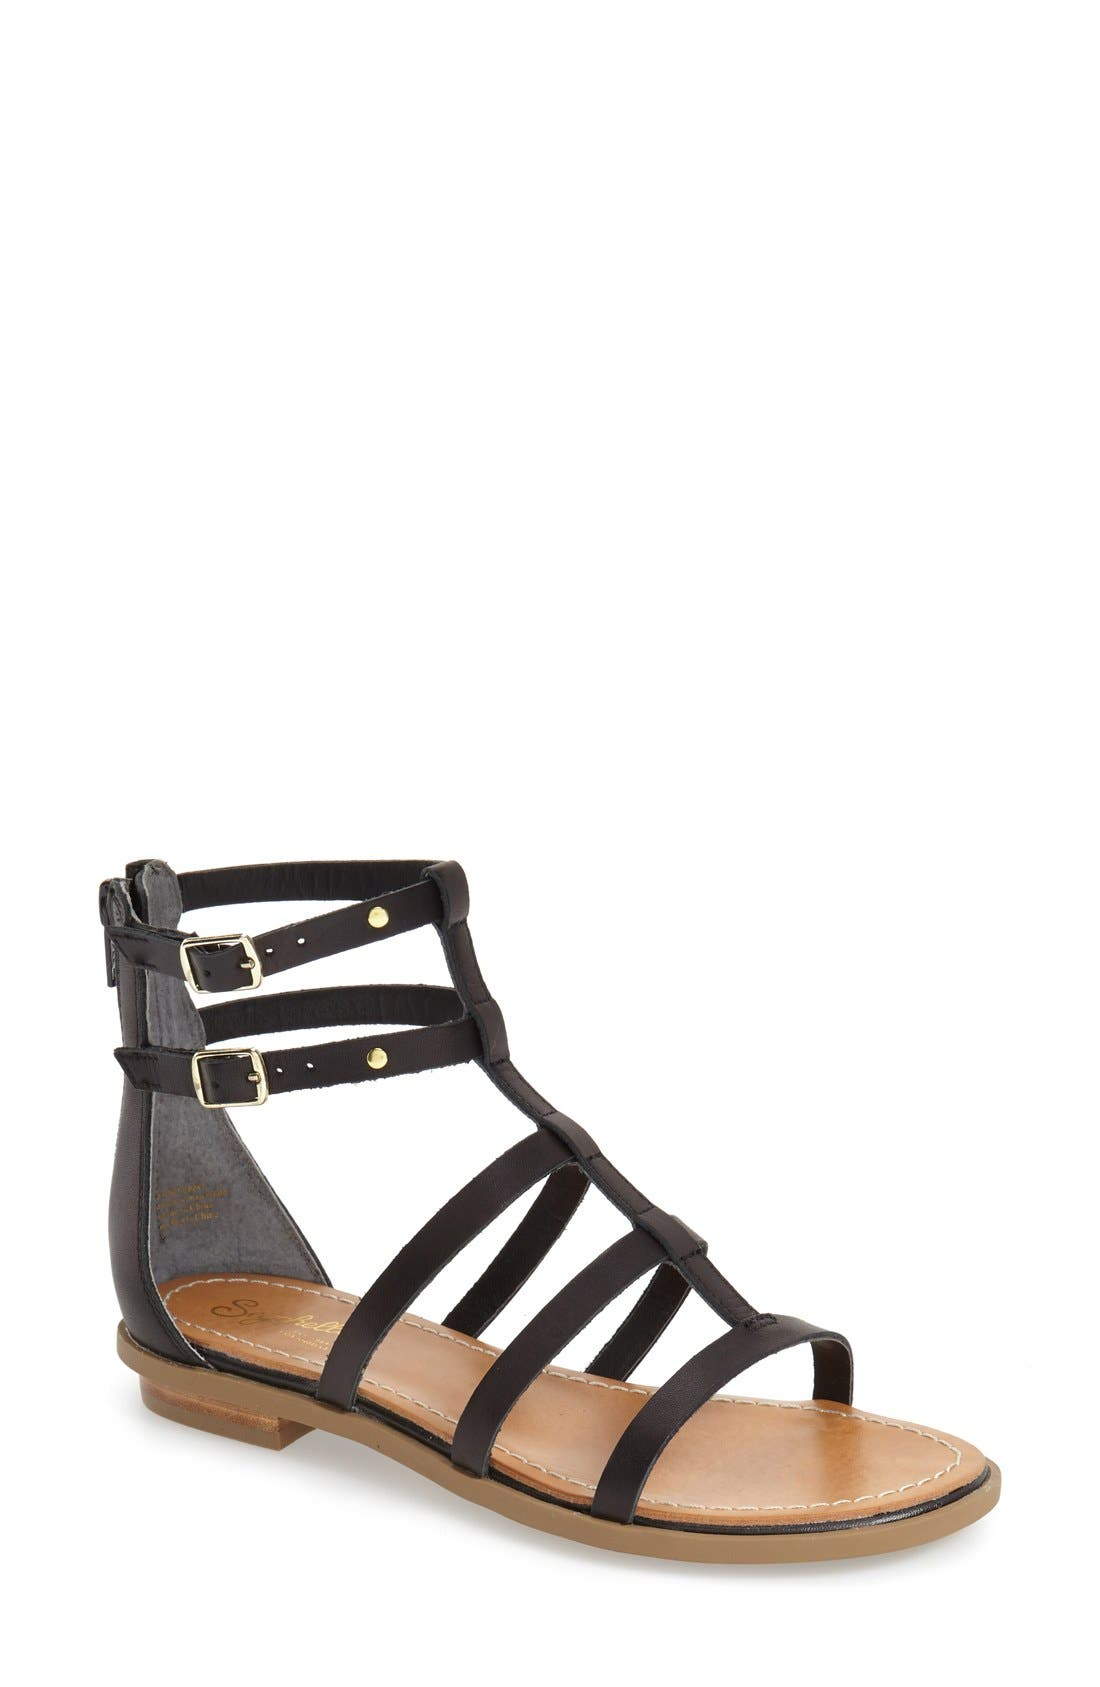 Alternate Image 1 Selected - Seychelles 'Peachy' Gladiator Flat Sandal (Women)